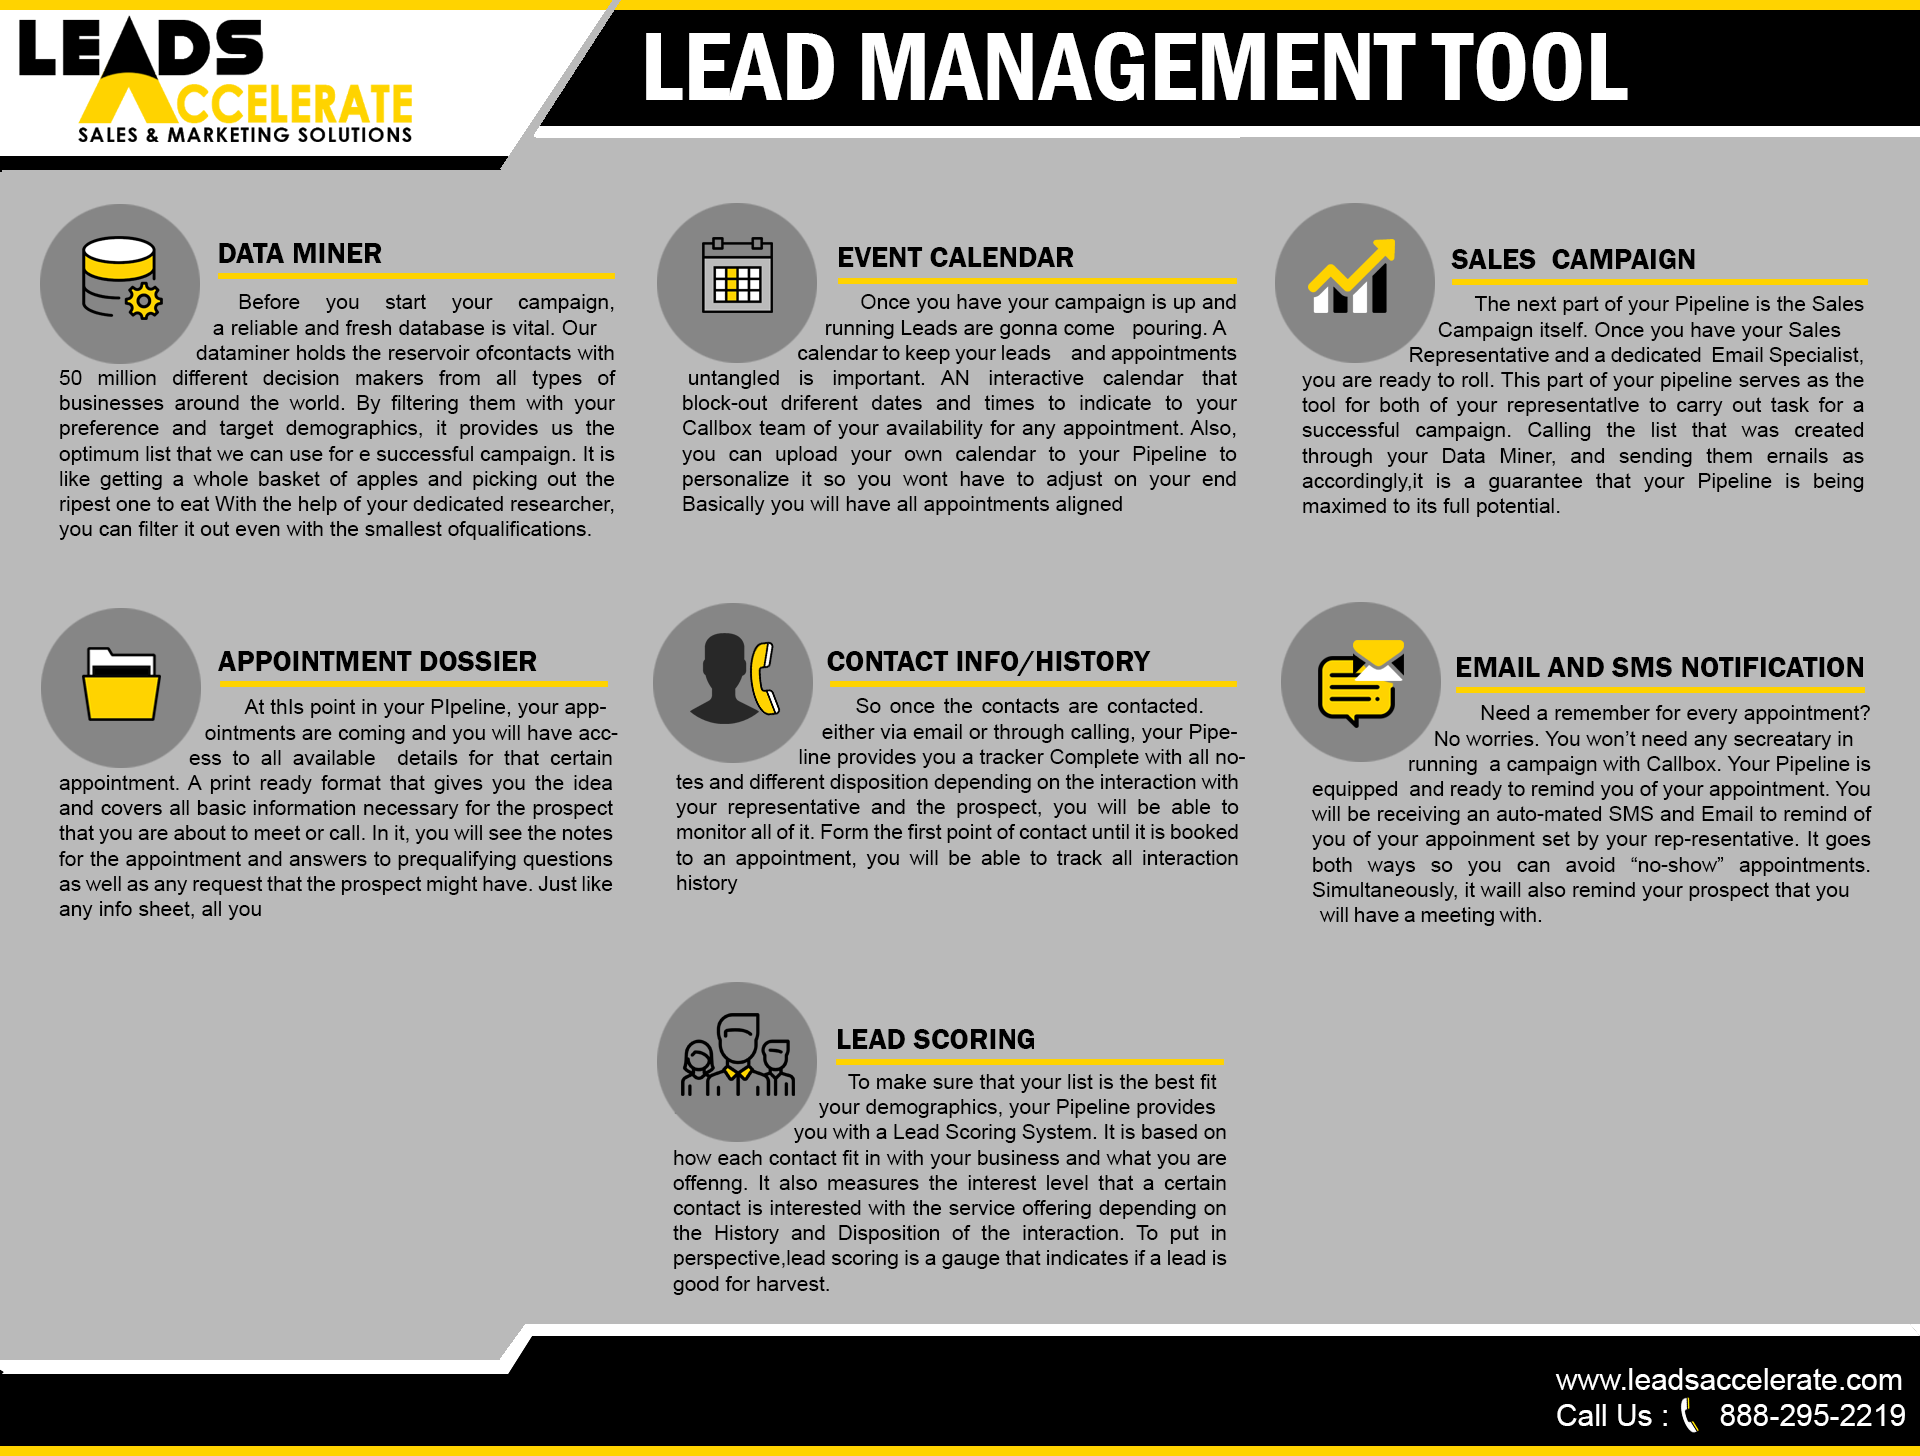 lead management too 1 l